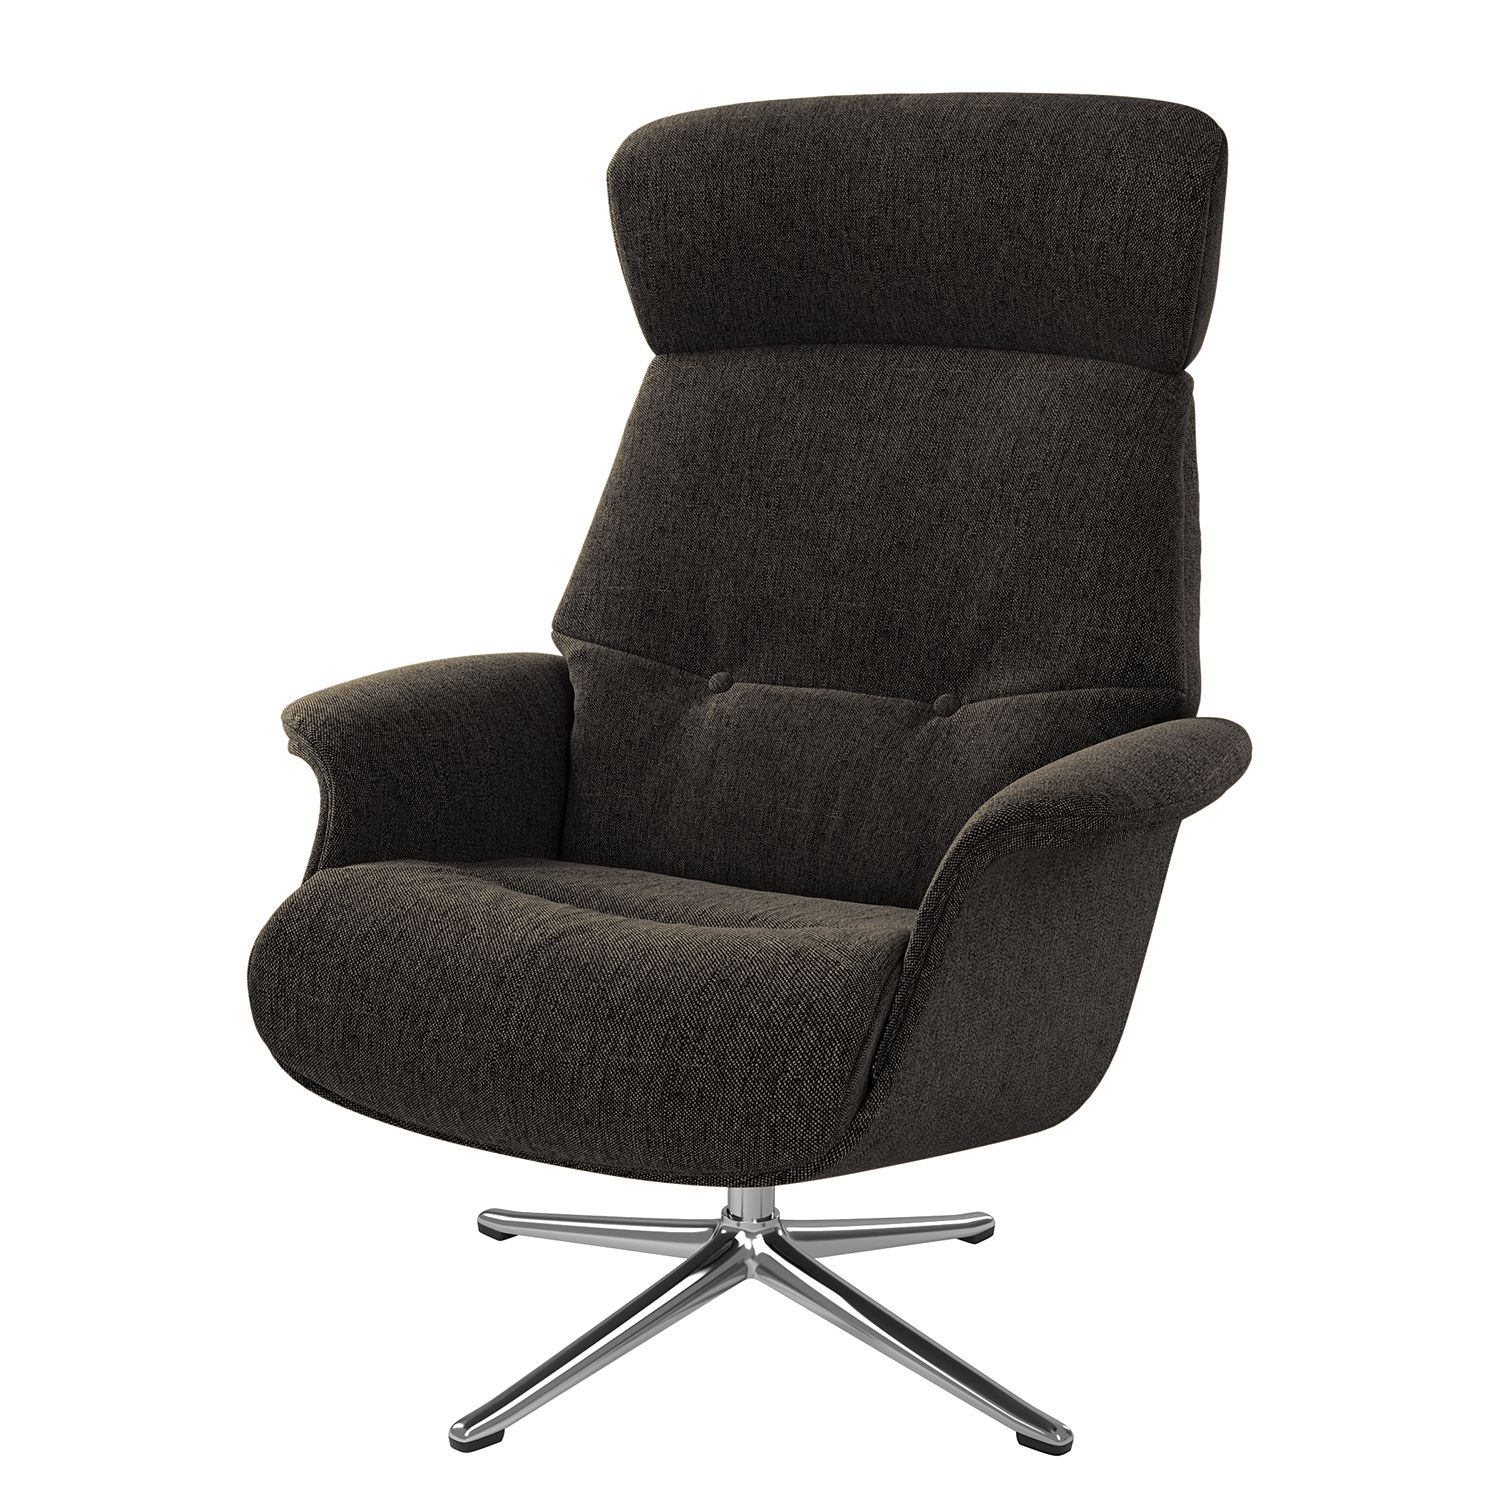 Fauteuil relax Anderson IV